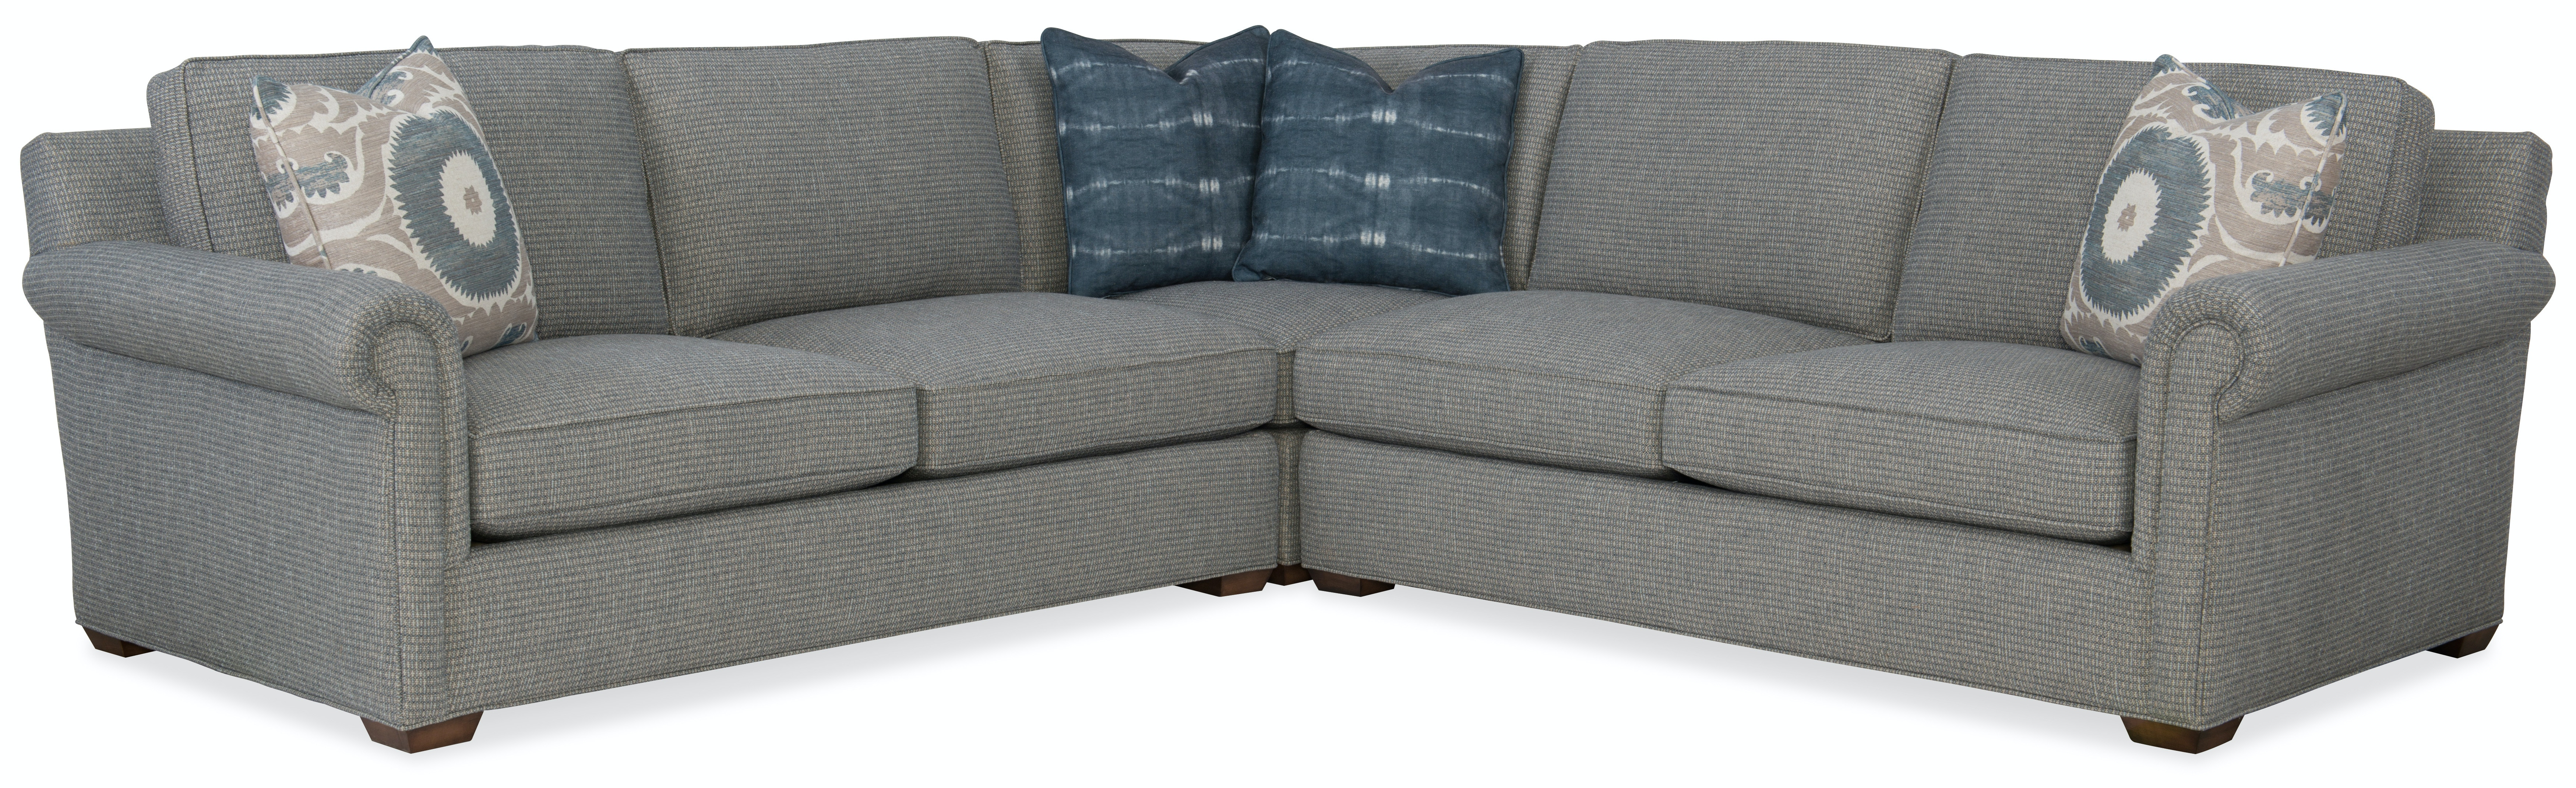 roll arm sofa canada corner sofas no credit check sam moore living room sm13 sadie sectional finesse furniture at interiors